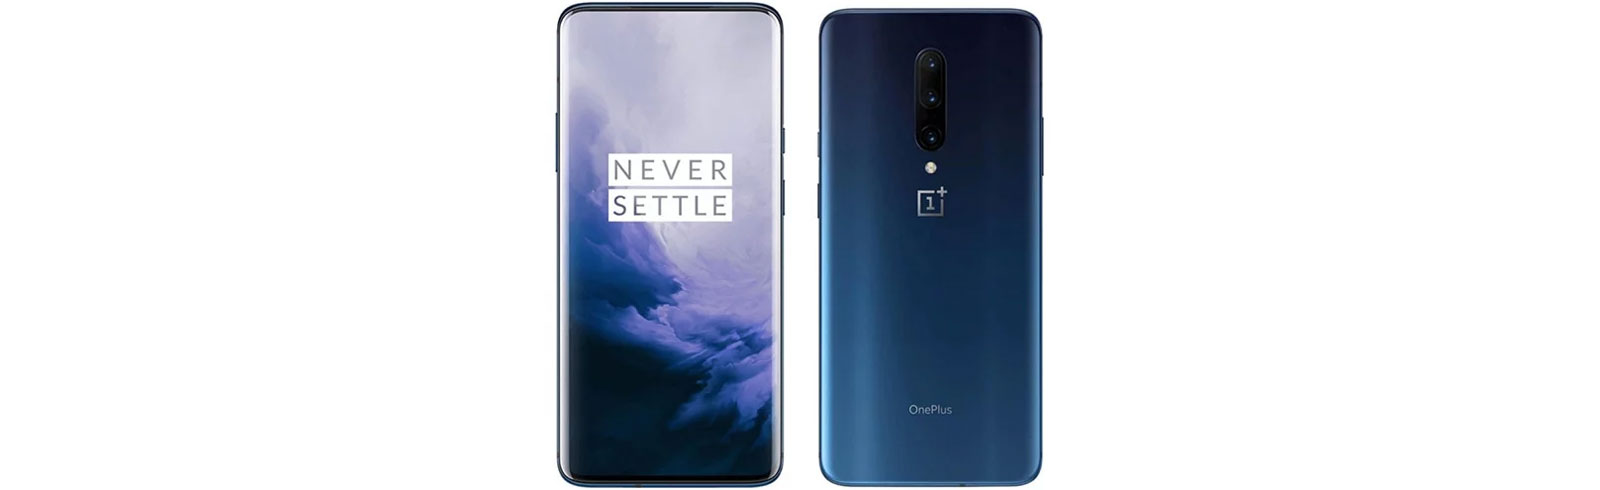 OnePlus 7 Pro specifications and renders leak ahead of May 14 launch